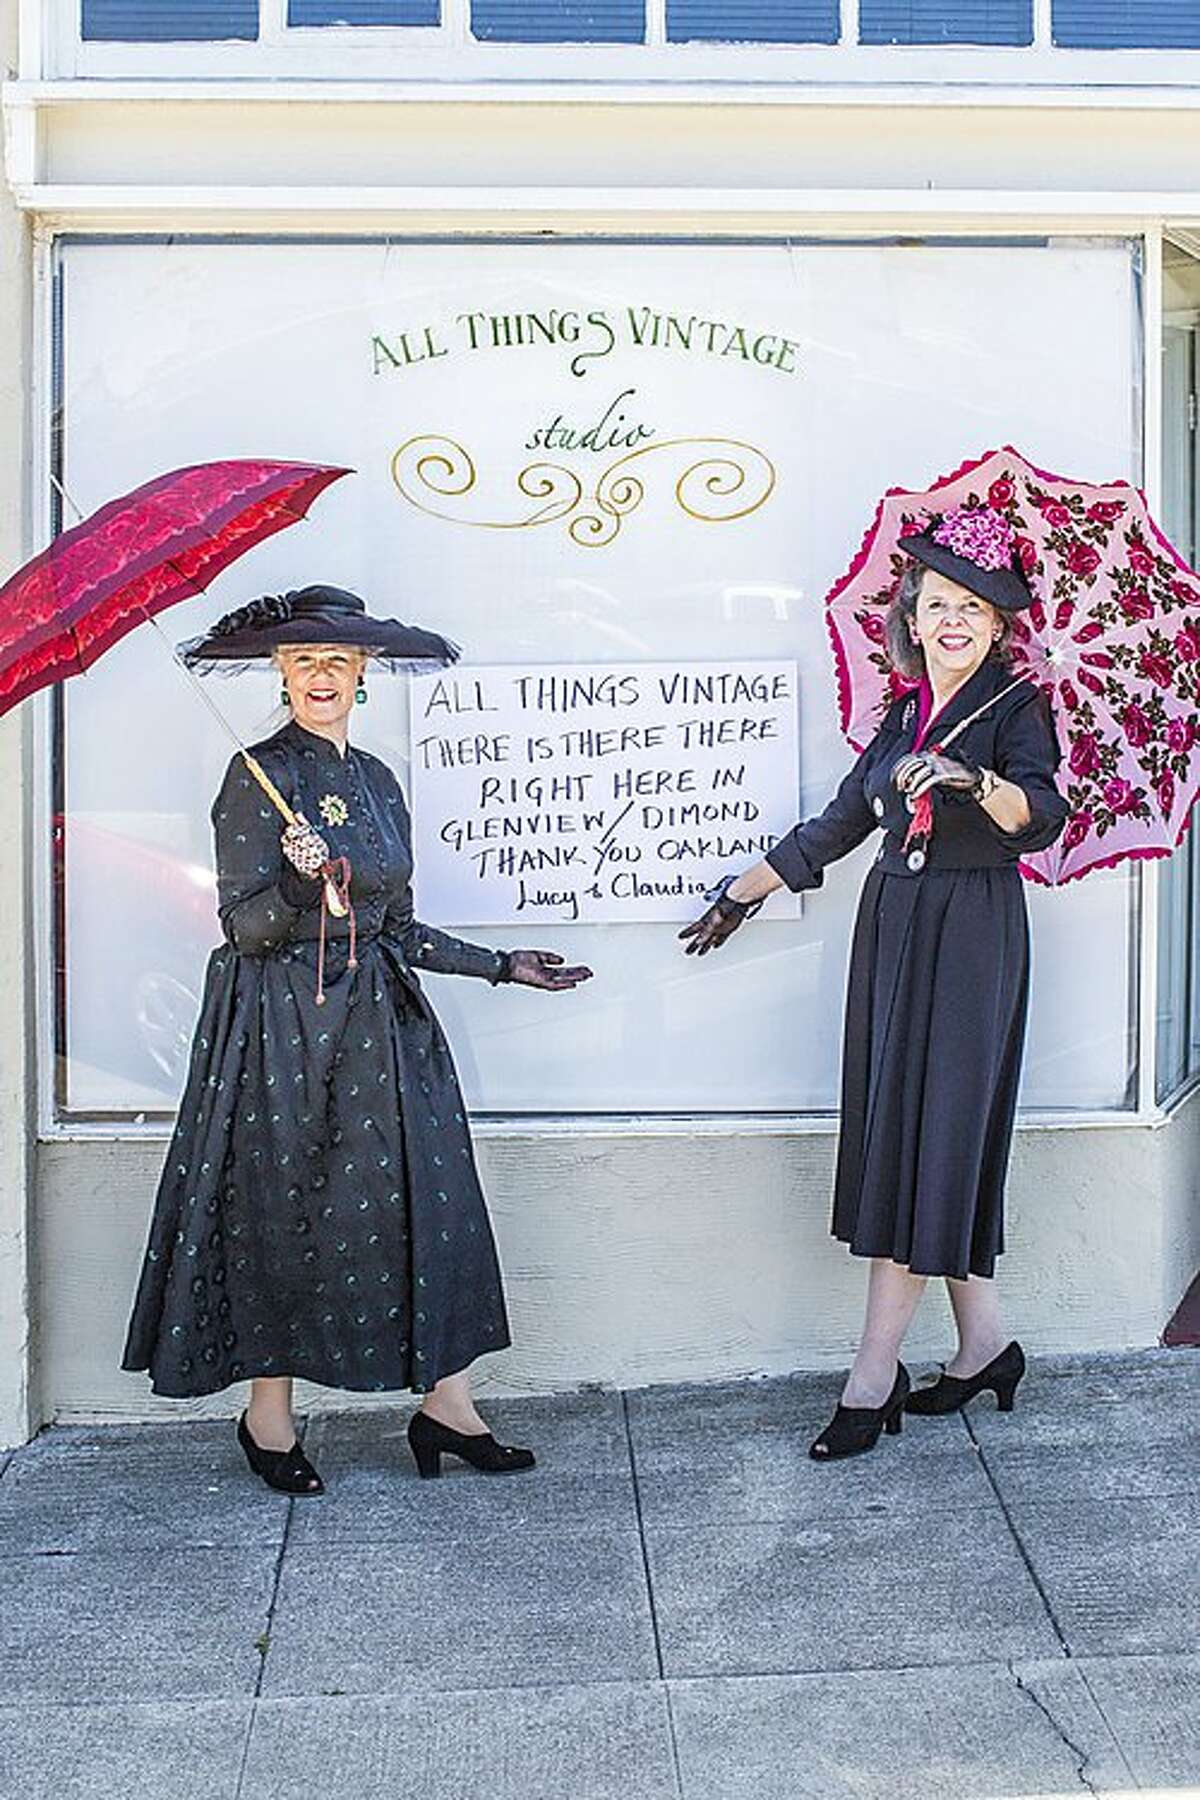 Lucinda and Claudia have a shop, All Things Vintage, in Oakland's Glenview neighborhood